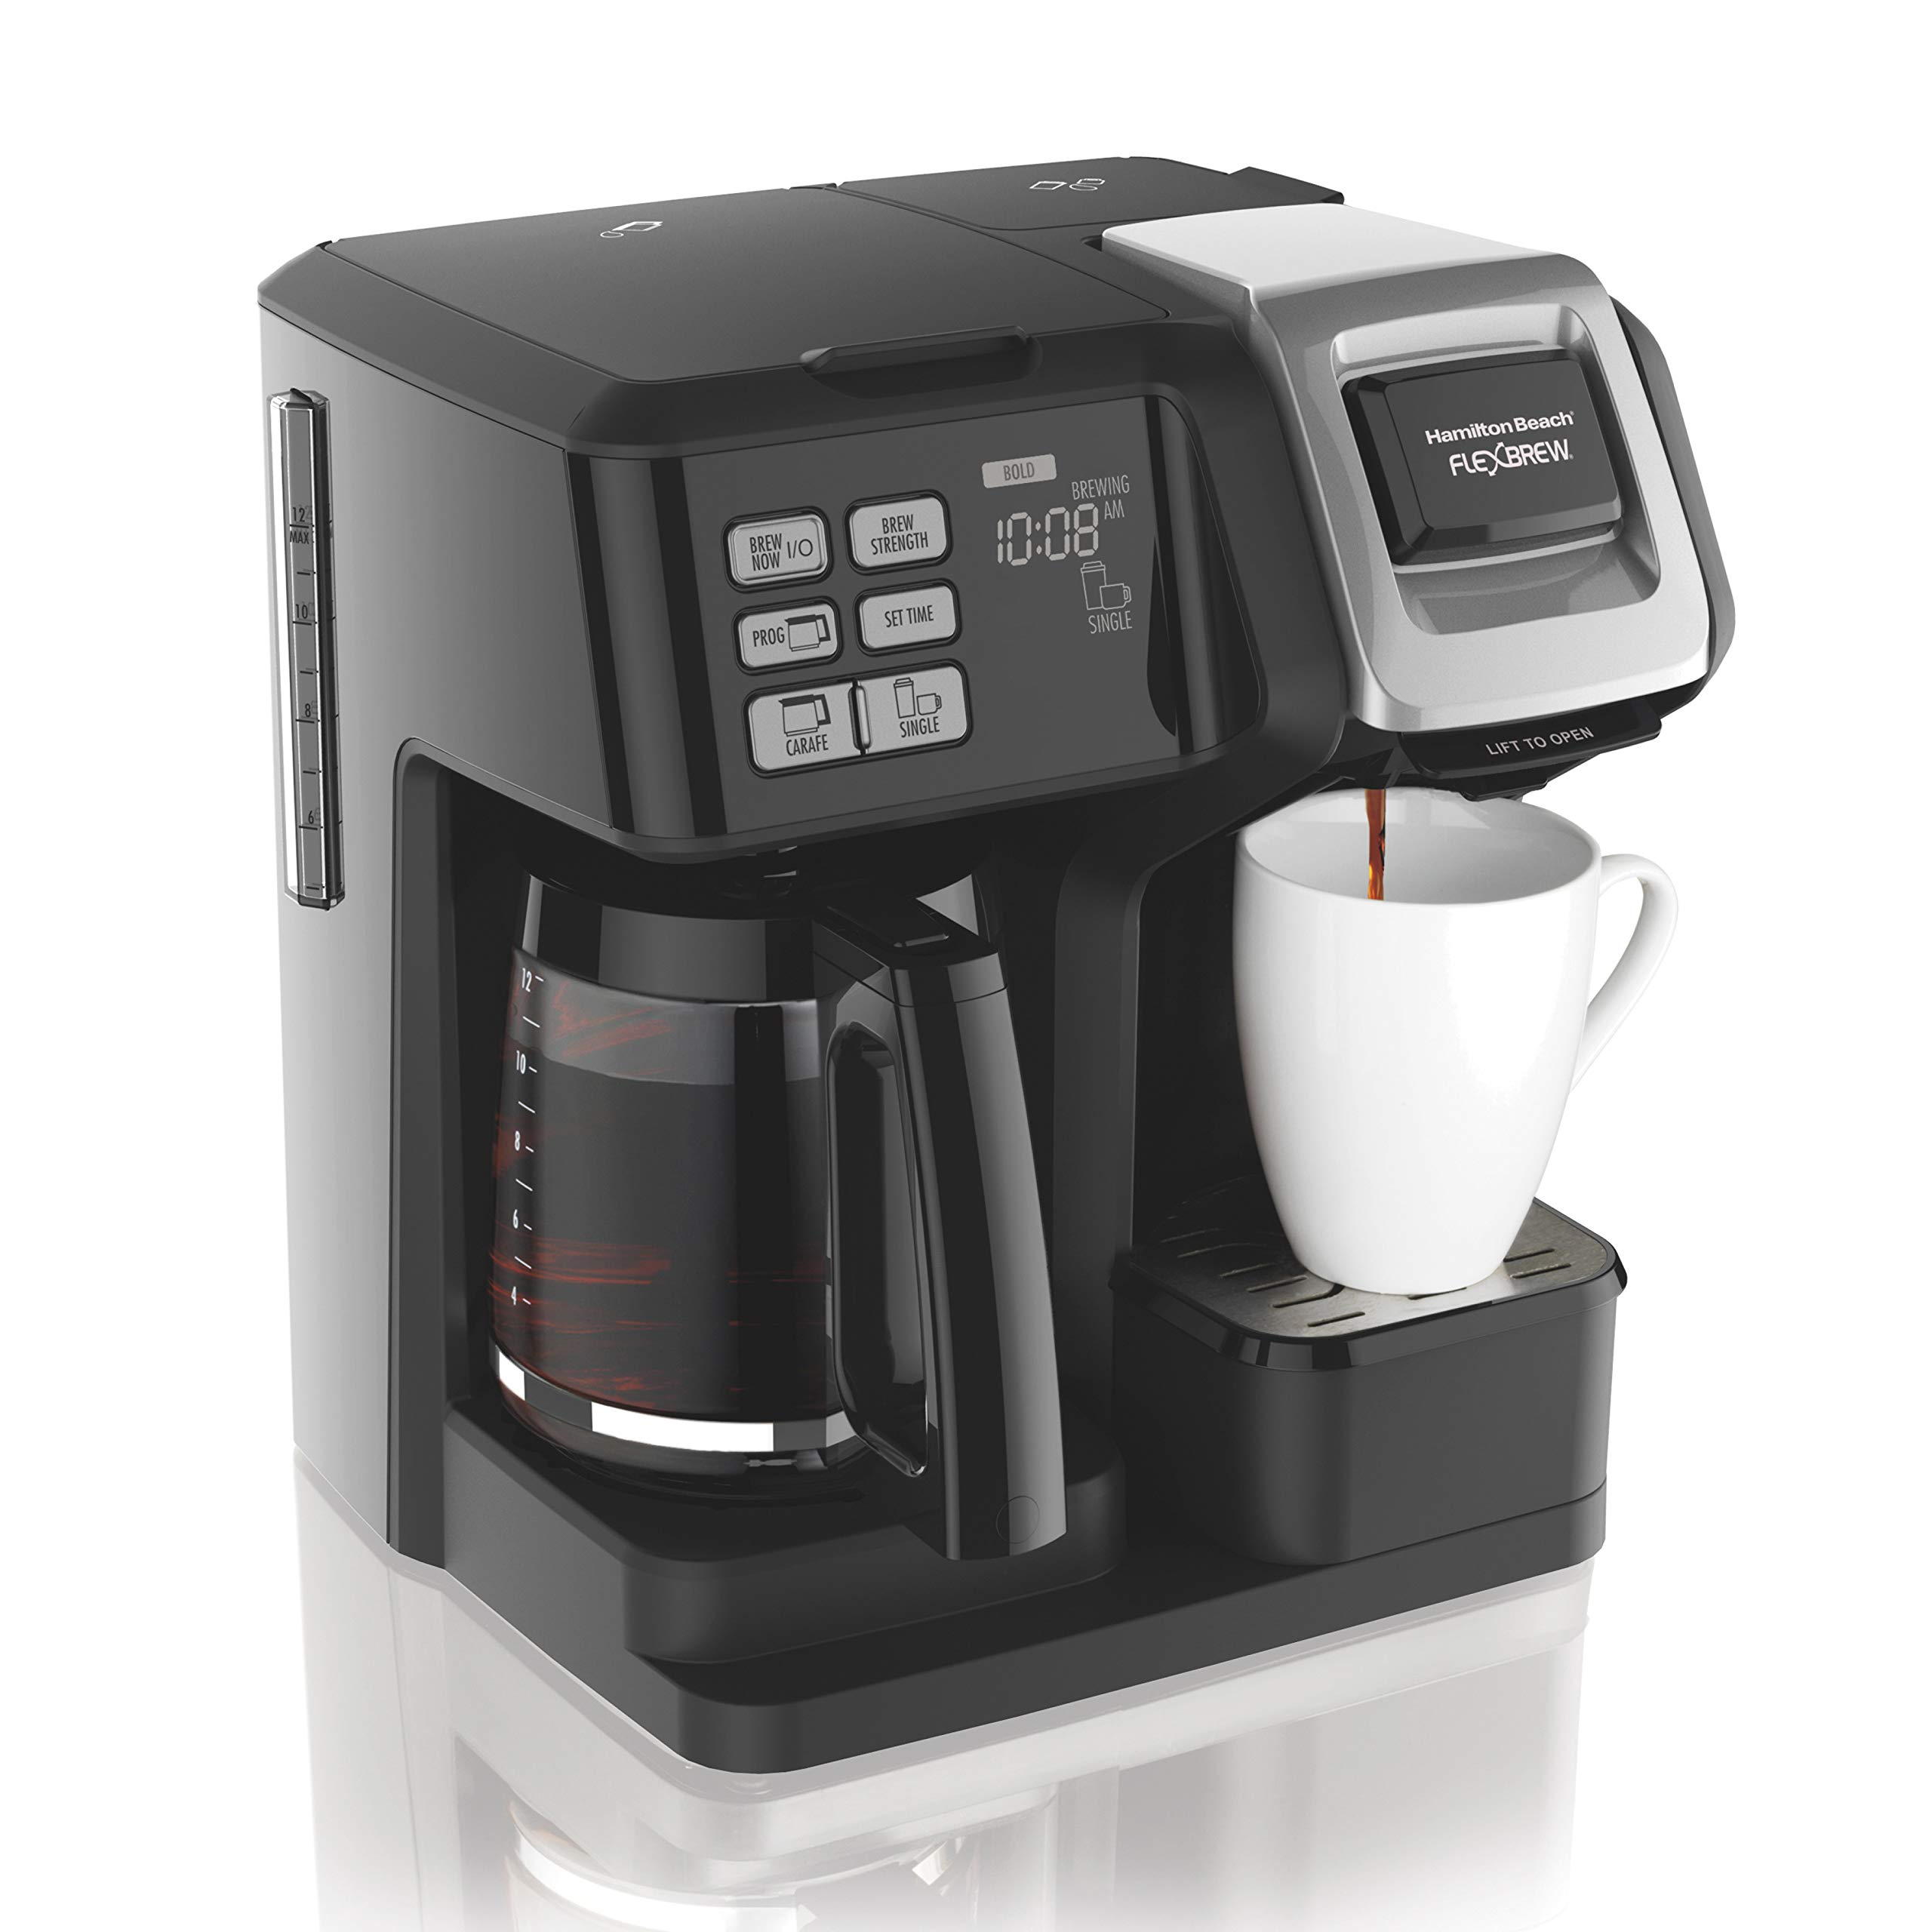 Hamilton Beach (49976) FlexBrew Coffee Maker, Single Serve & Full Coffee Pot, Compatible with Single-Serve Pods or Ground Coffee, Programmable, Black by Hamilton Beach